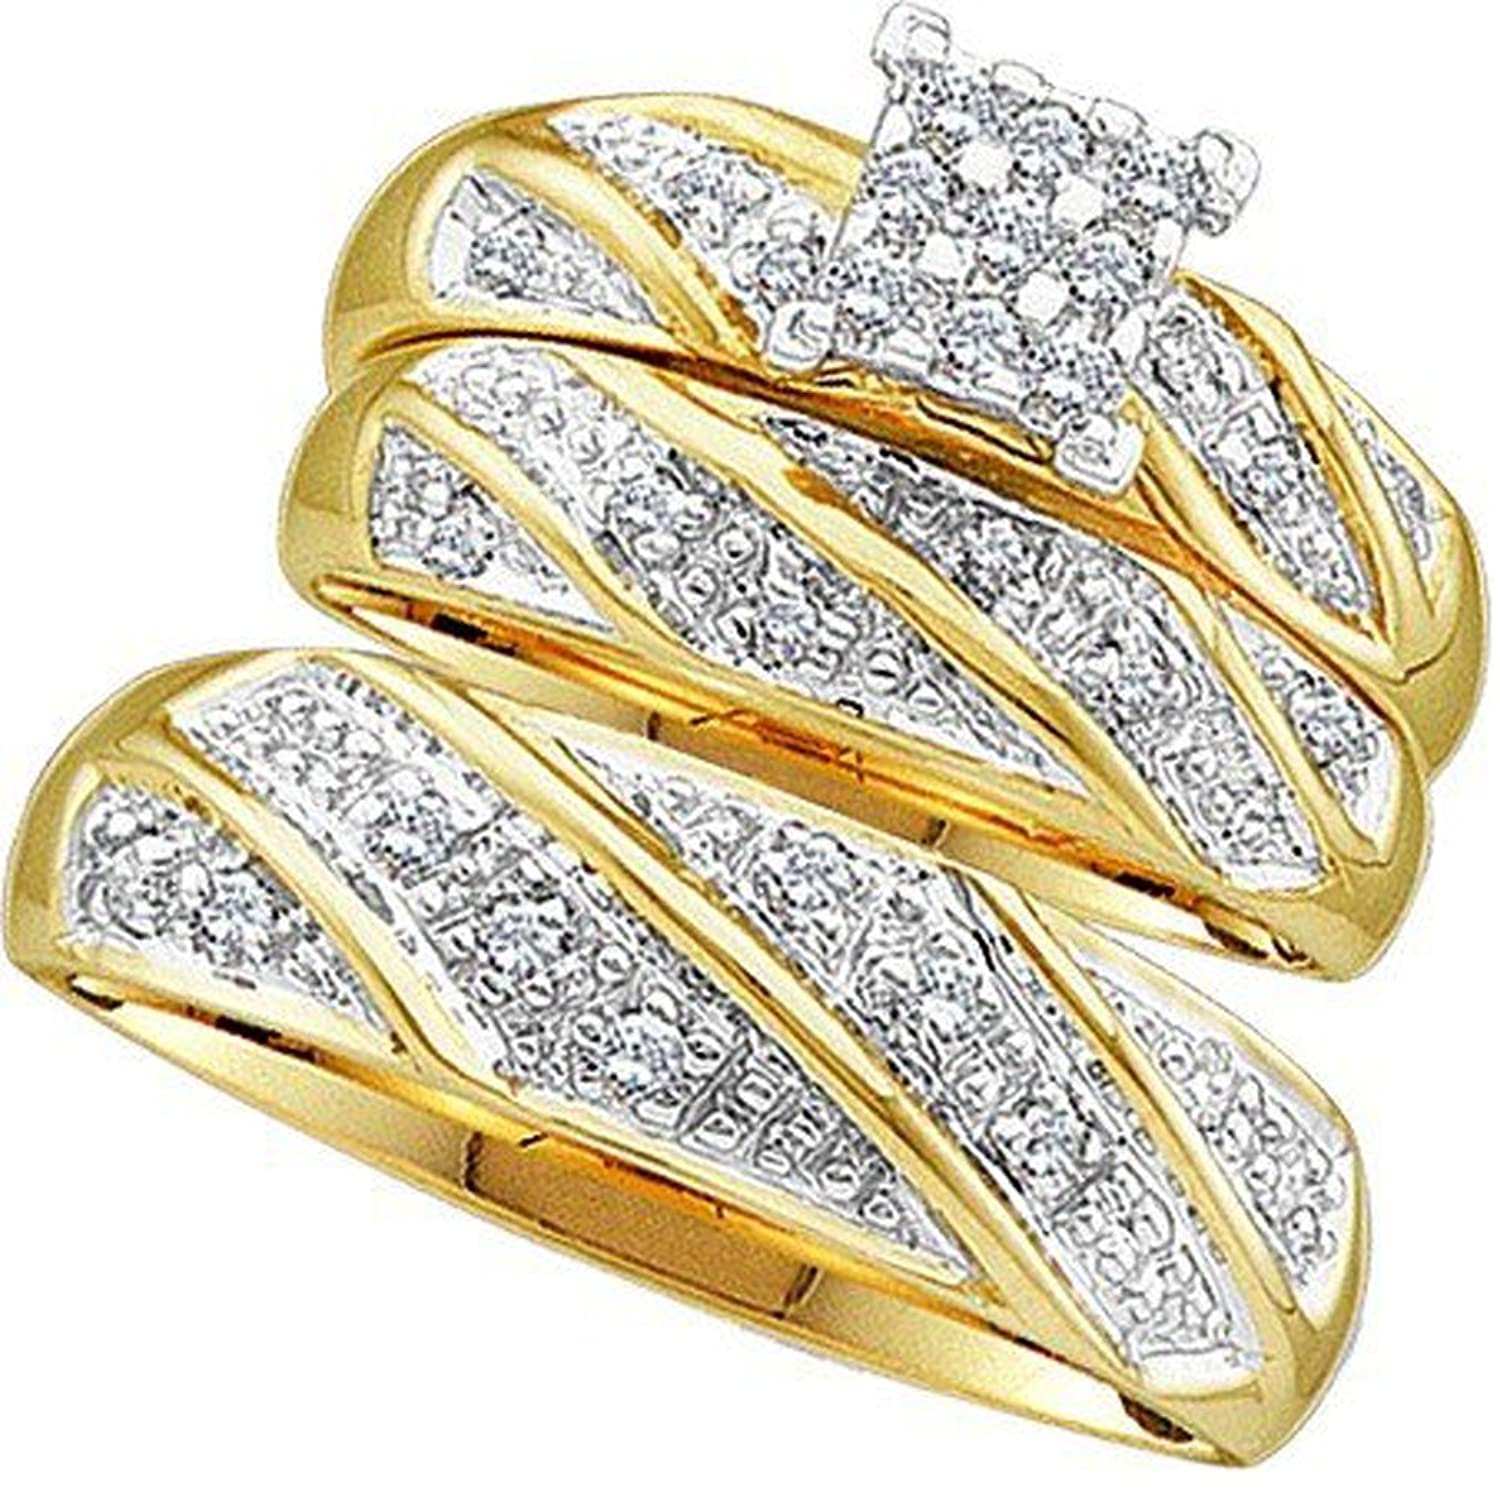 sets gold bands idea band and yellow his of unique wedding for rings her luxury